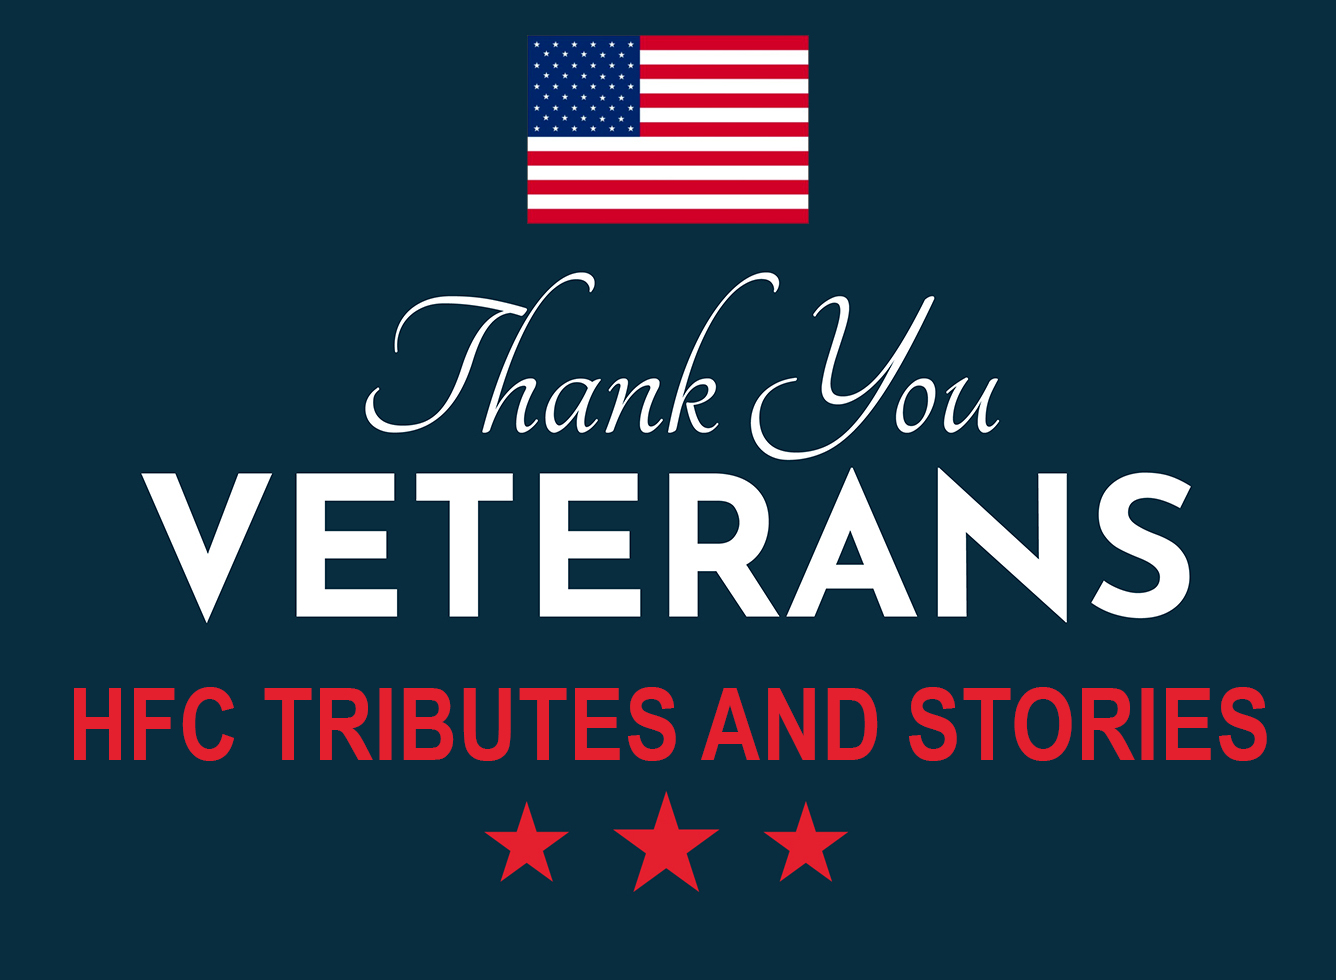 HFC veterans day graphic